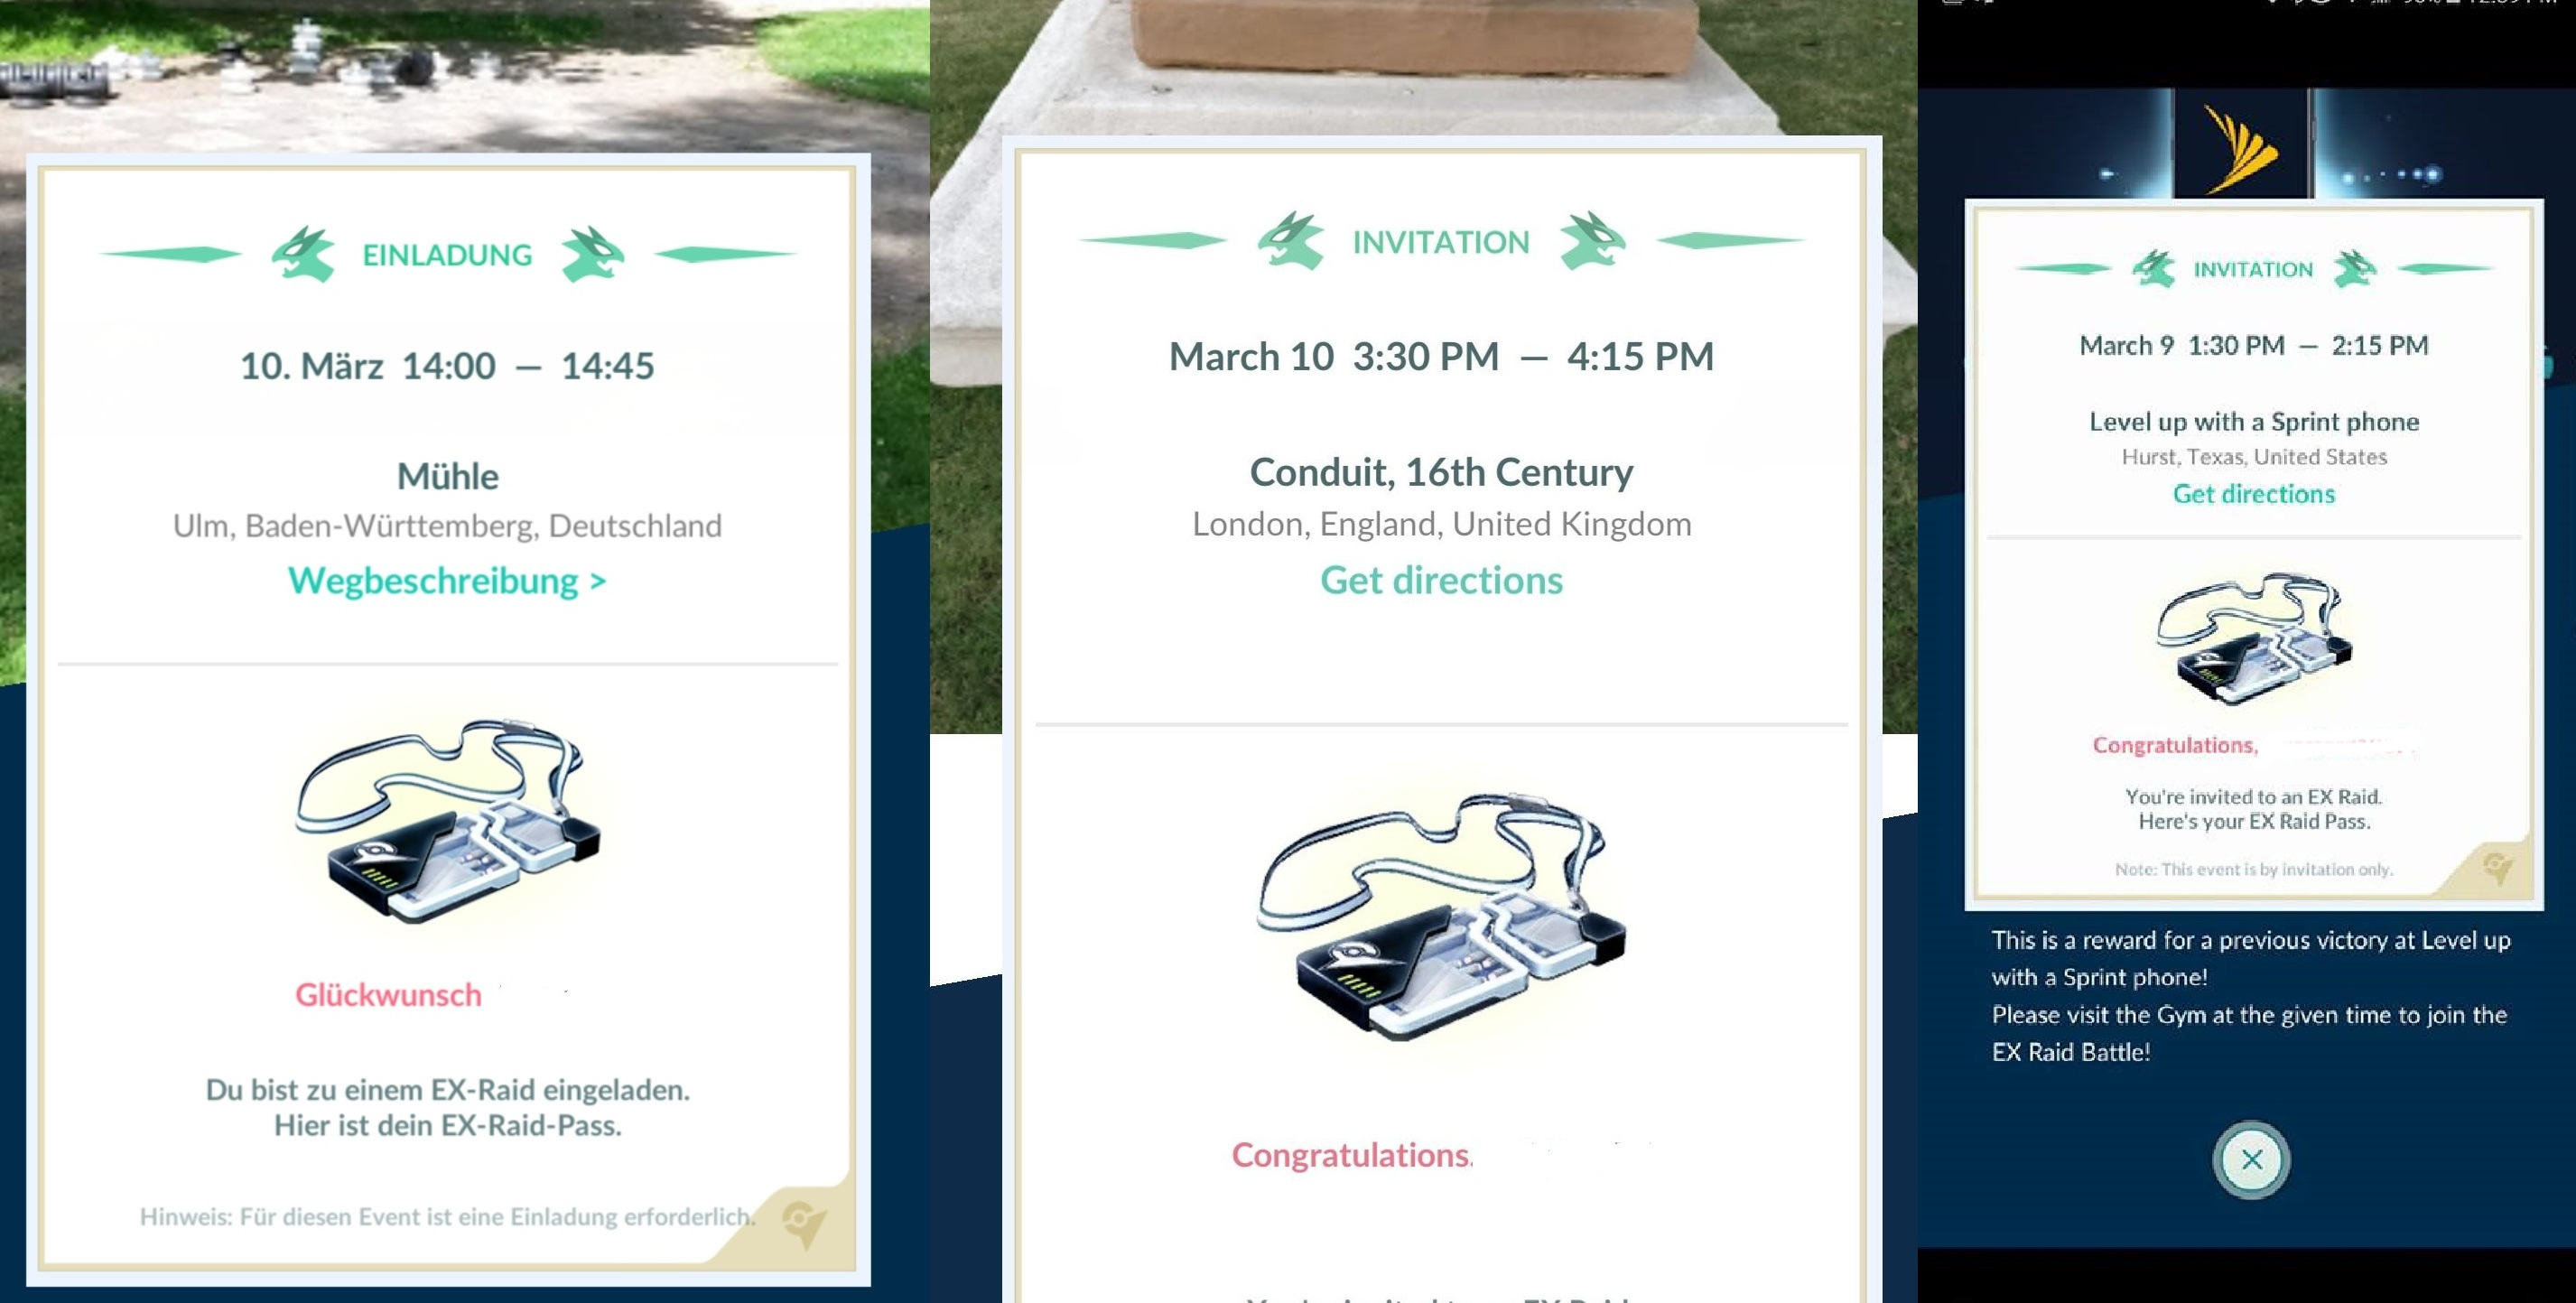 Pokemon GO Legendary Week: Rayquaza, Groudon, Kyogre return, Community Day features Dratini